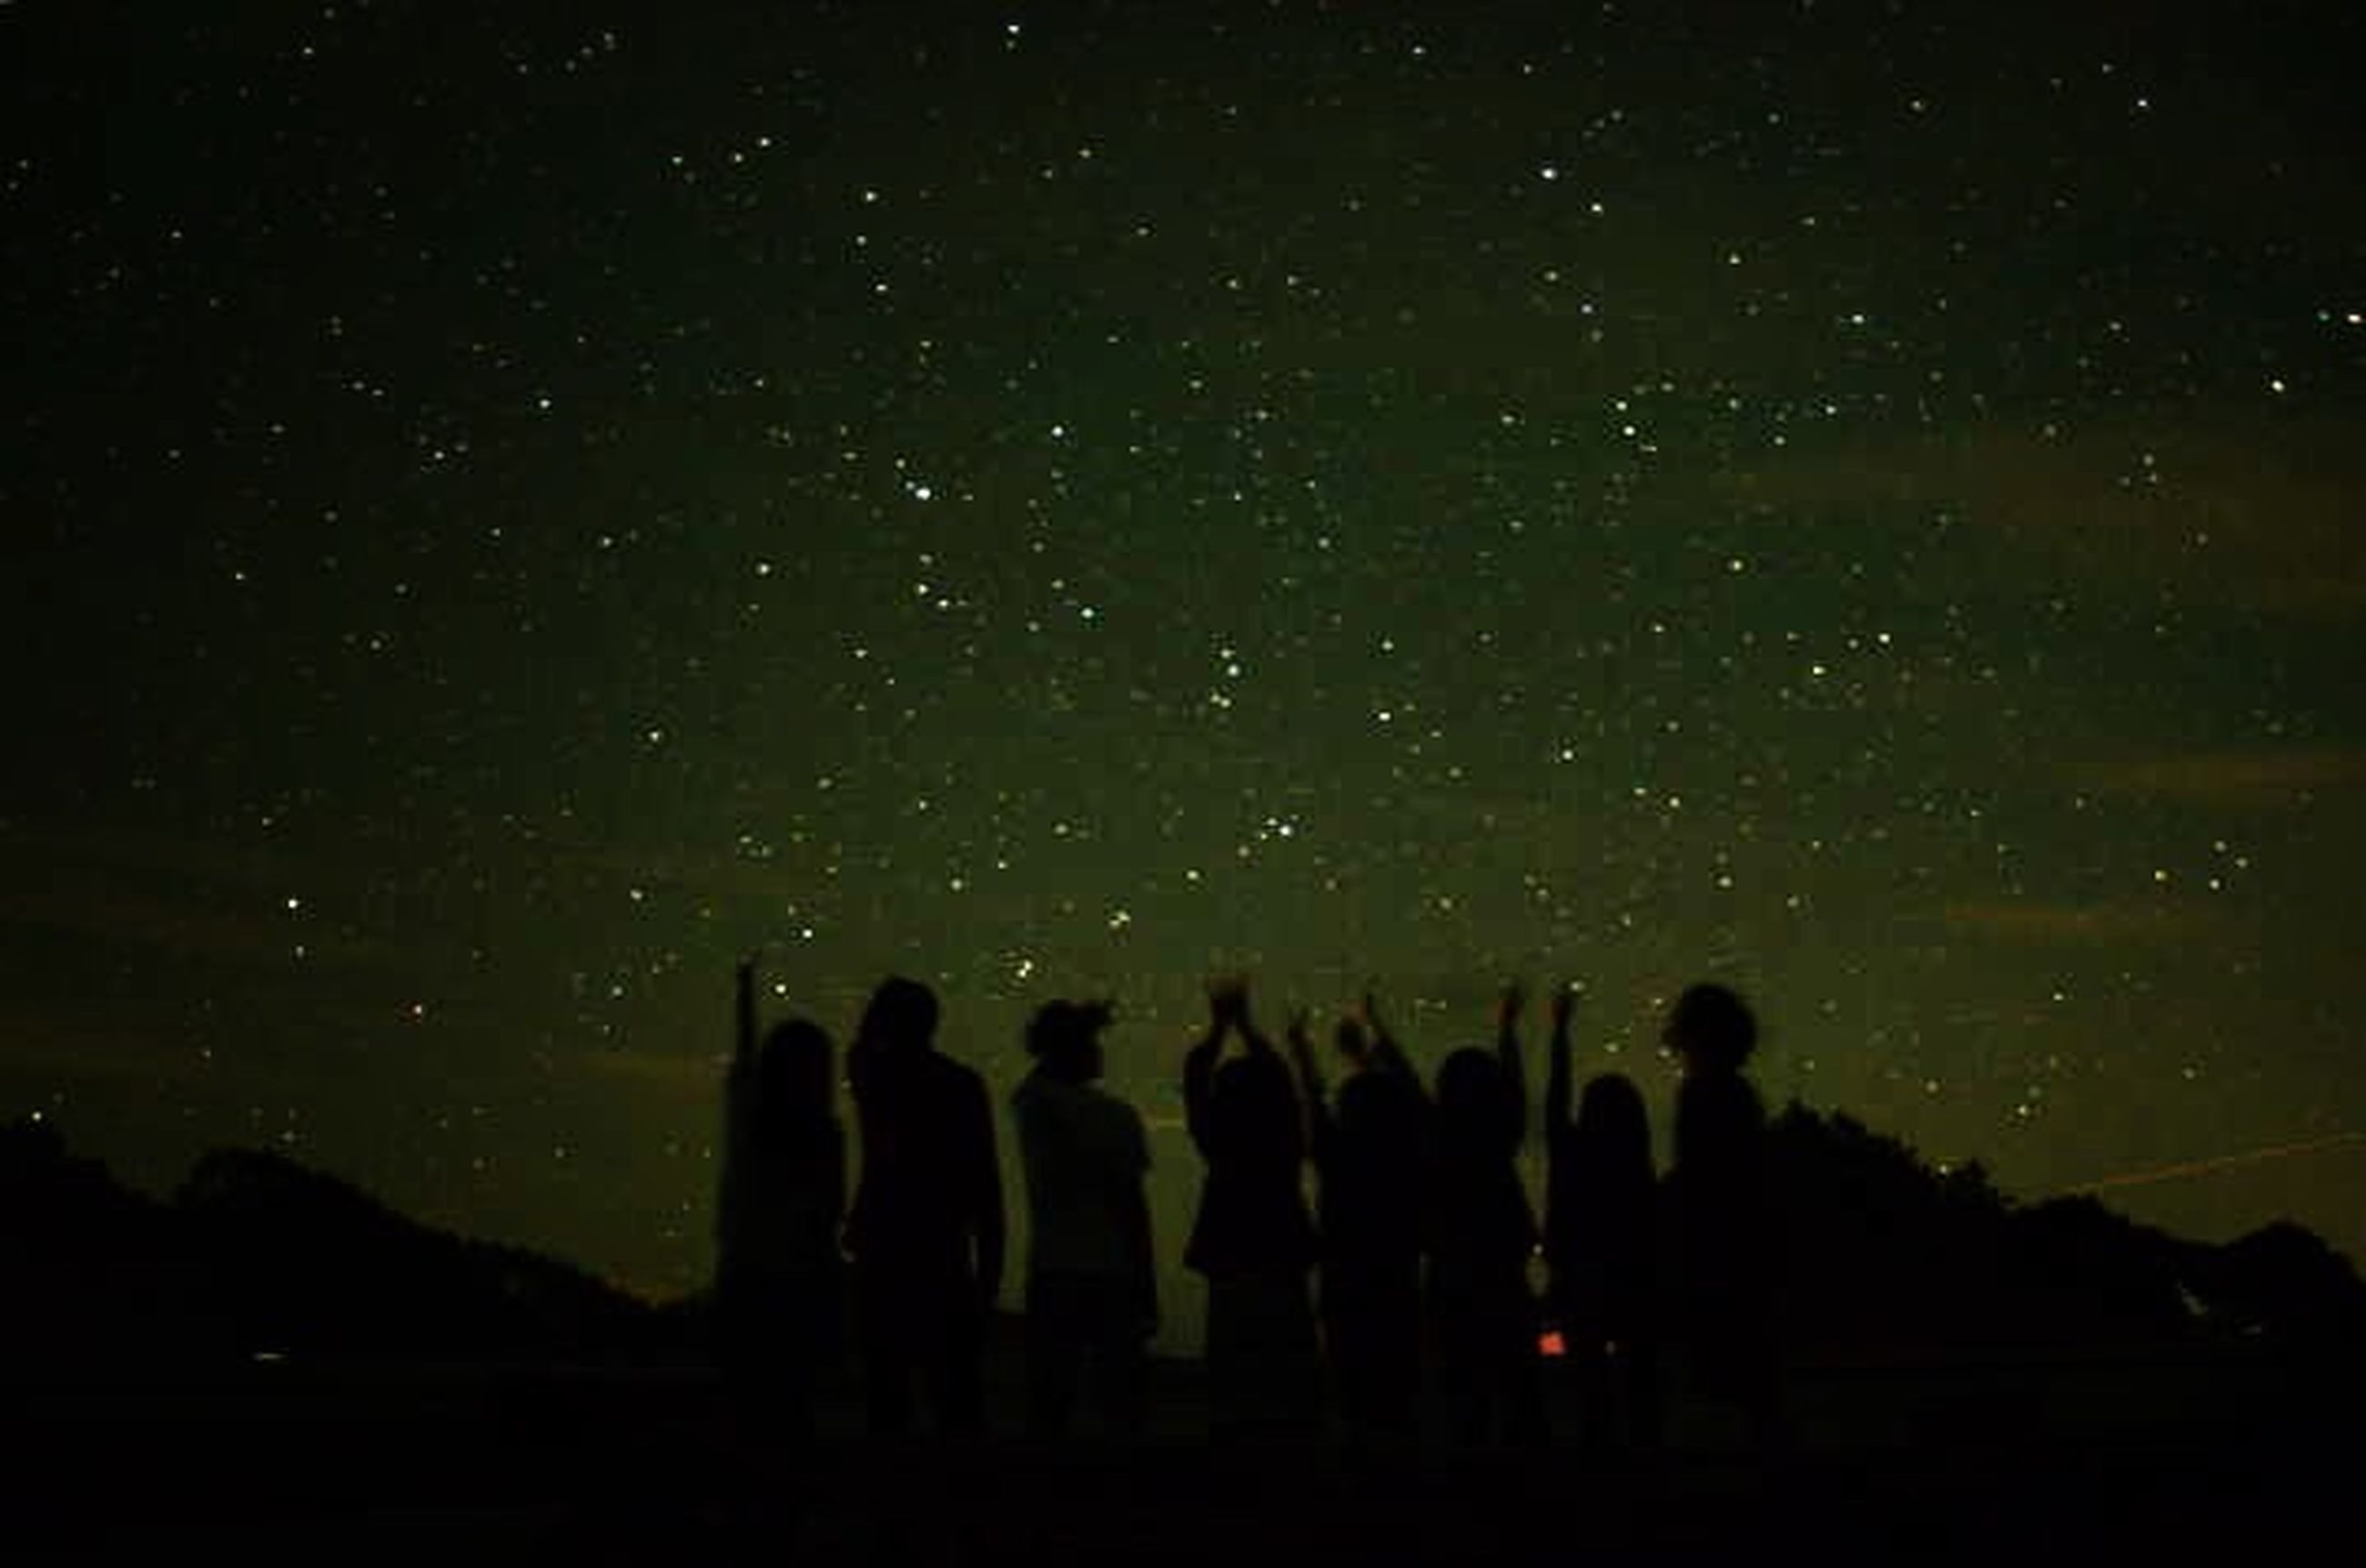 night, silhouette, star - space, star field, dark, sky, scenics, tranquil scene, low angle view, beauty in nature, tranquility, nature, galaxy, exploration, astronomy, illuminated, men, standing, leisure activity